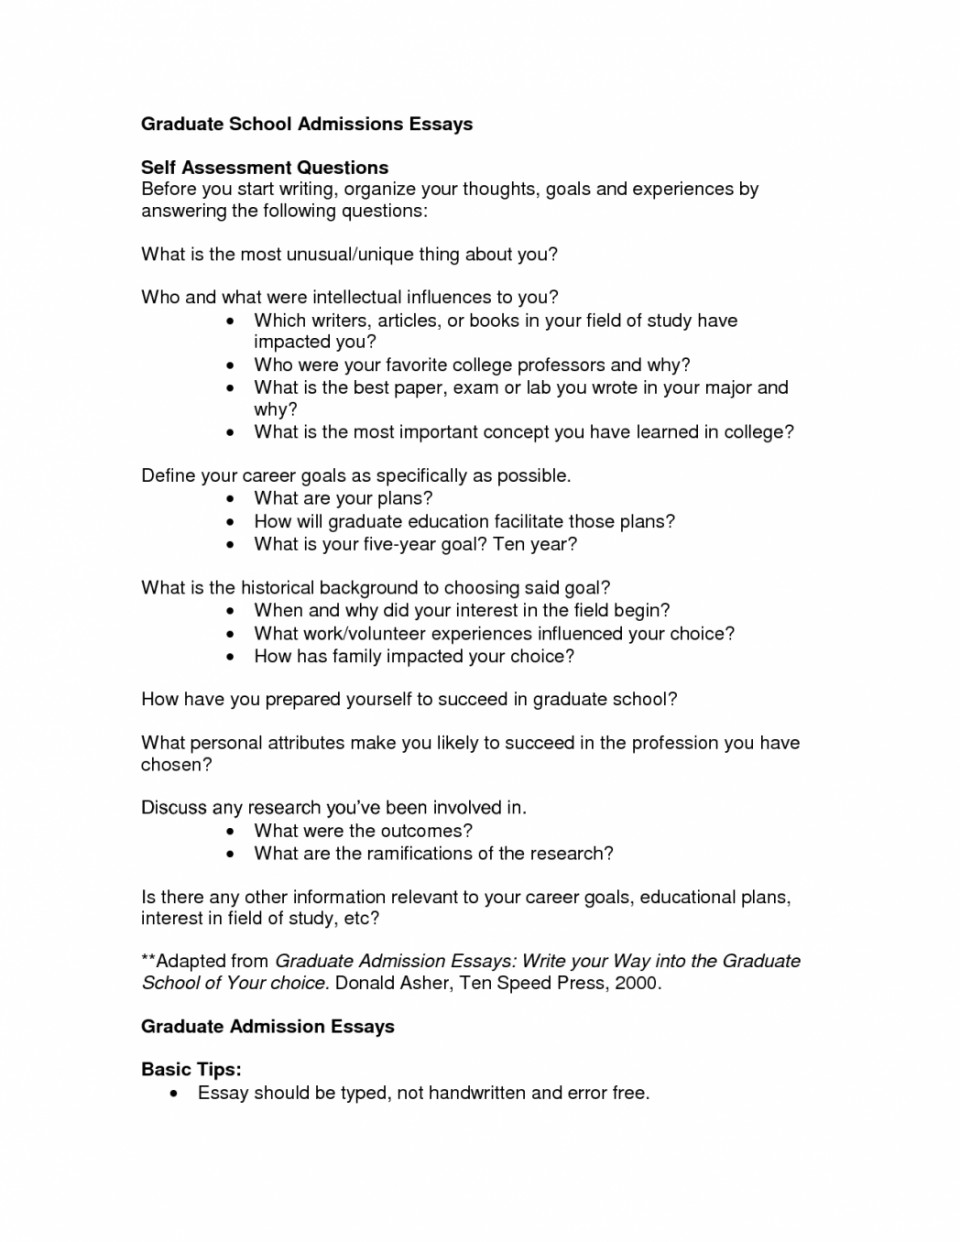 011 Essay Example Do Myaduate Essays Custom Writing Company An For School Application Gp7xjad Personal Sample Social Work Autobiographical College Psychology 1048x1356 Surprising Graduate Admission Nursing 960